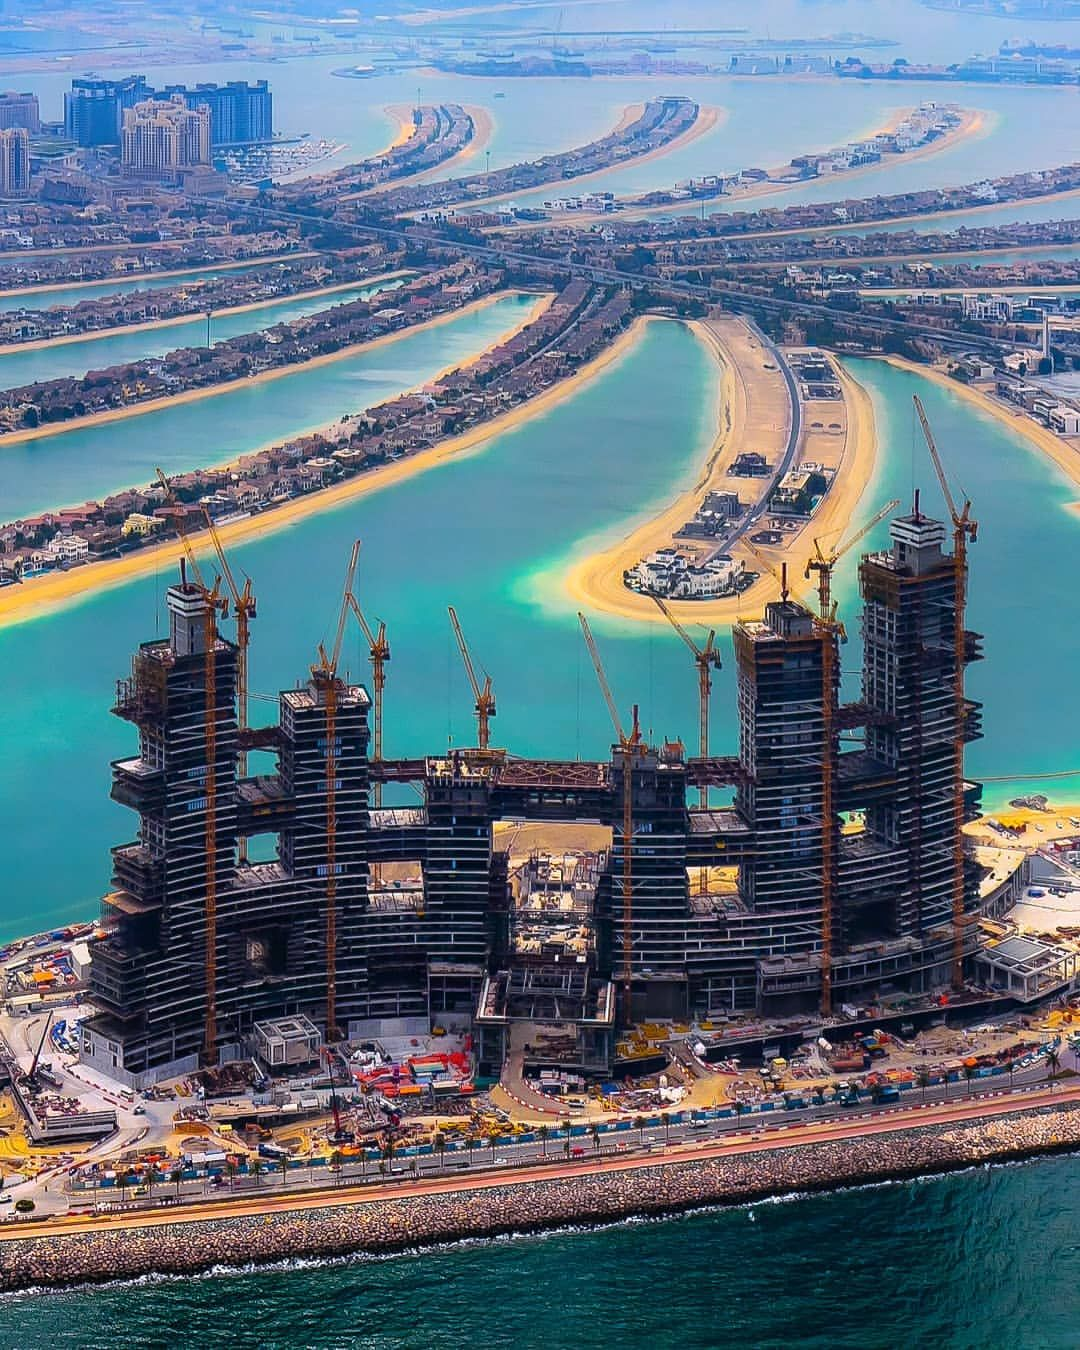 Royal Atlantis Resort Under Construction On The Outer Ring Of The Palm Jumeirah Dubai 1080 X 1350 Dubai Architecture Royal Atlantis Dubai Buildings